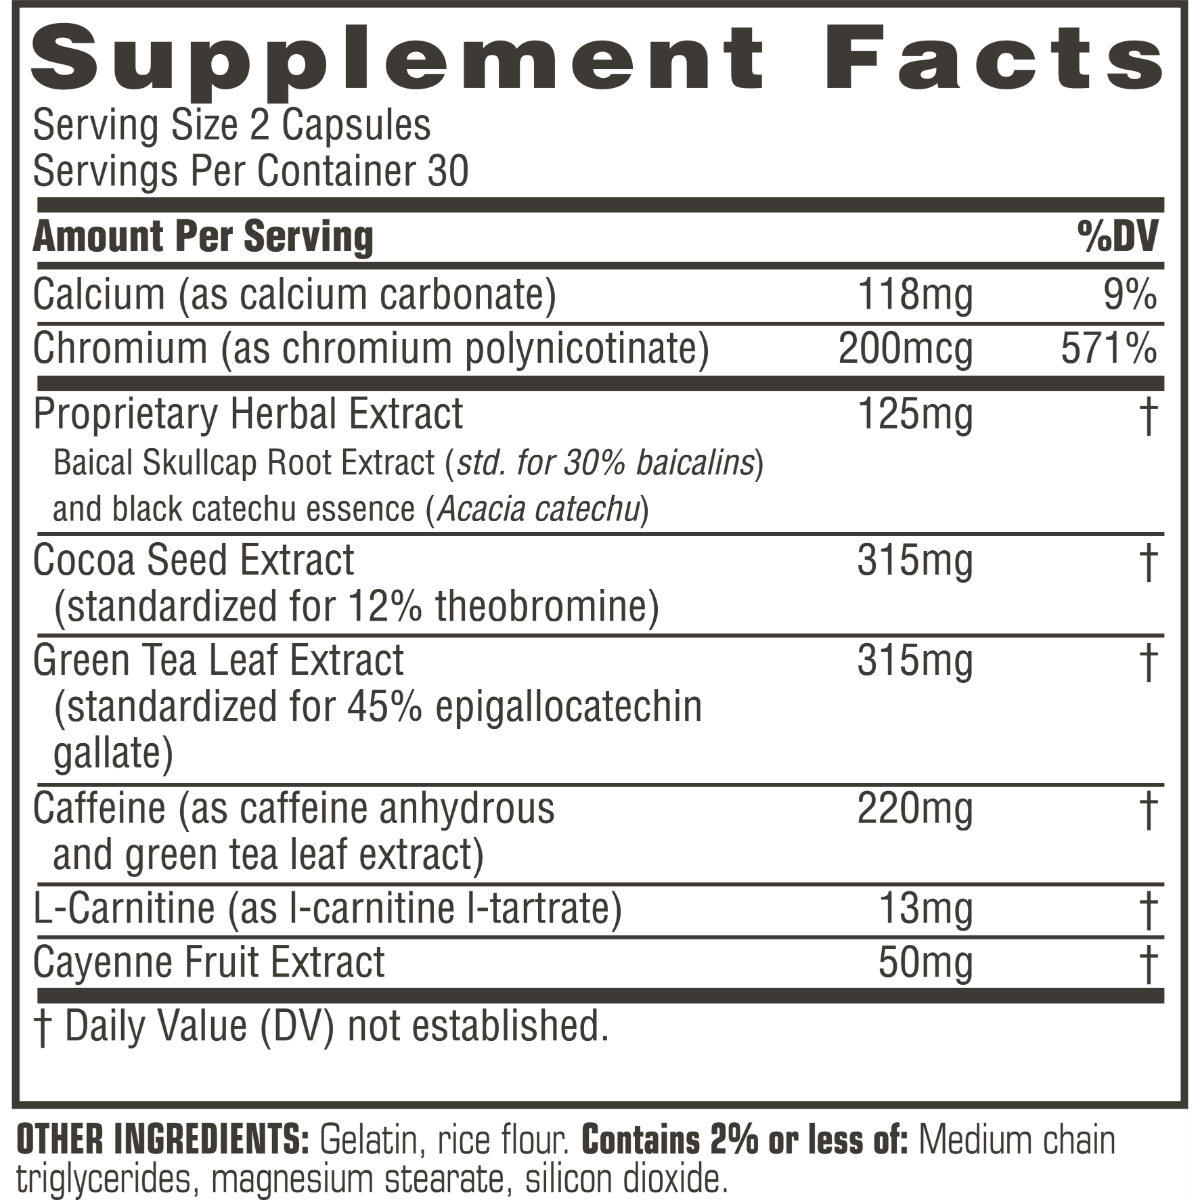 Supplement facts for Twinlab Ripped Fuel Extreme